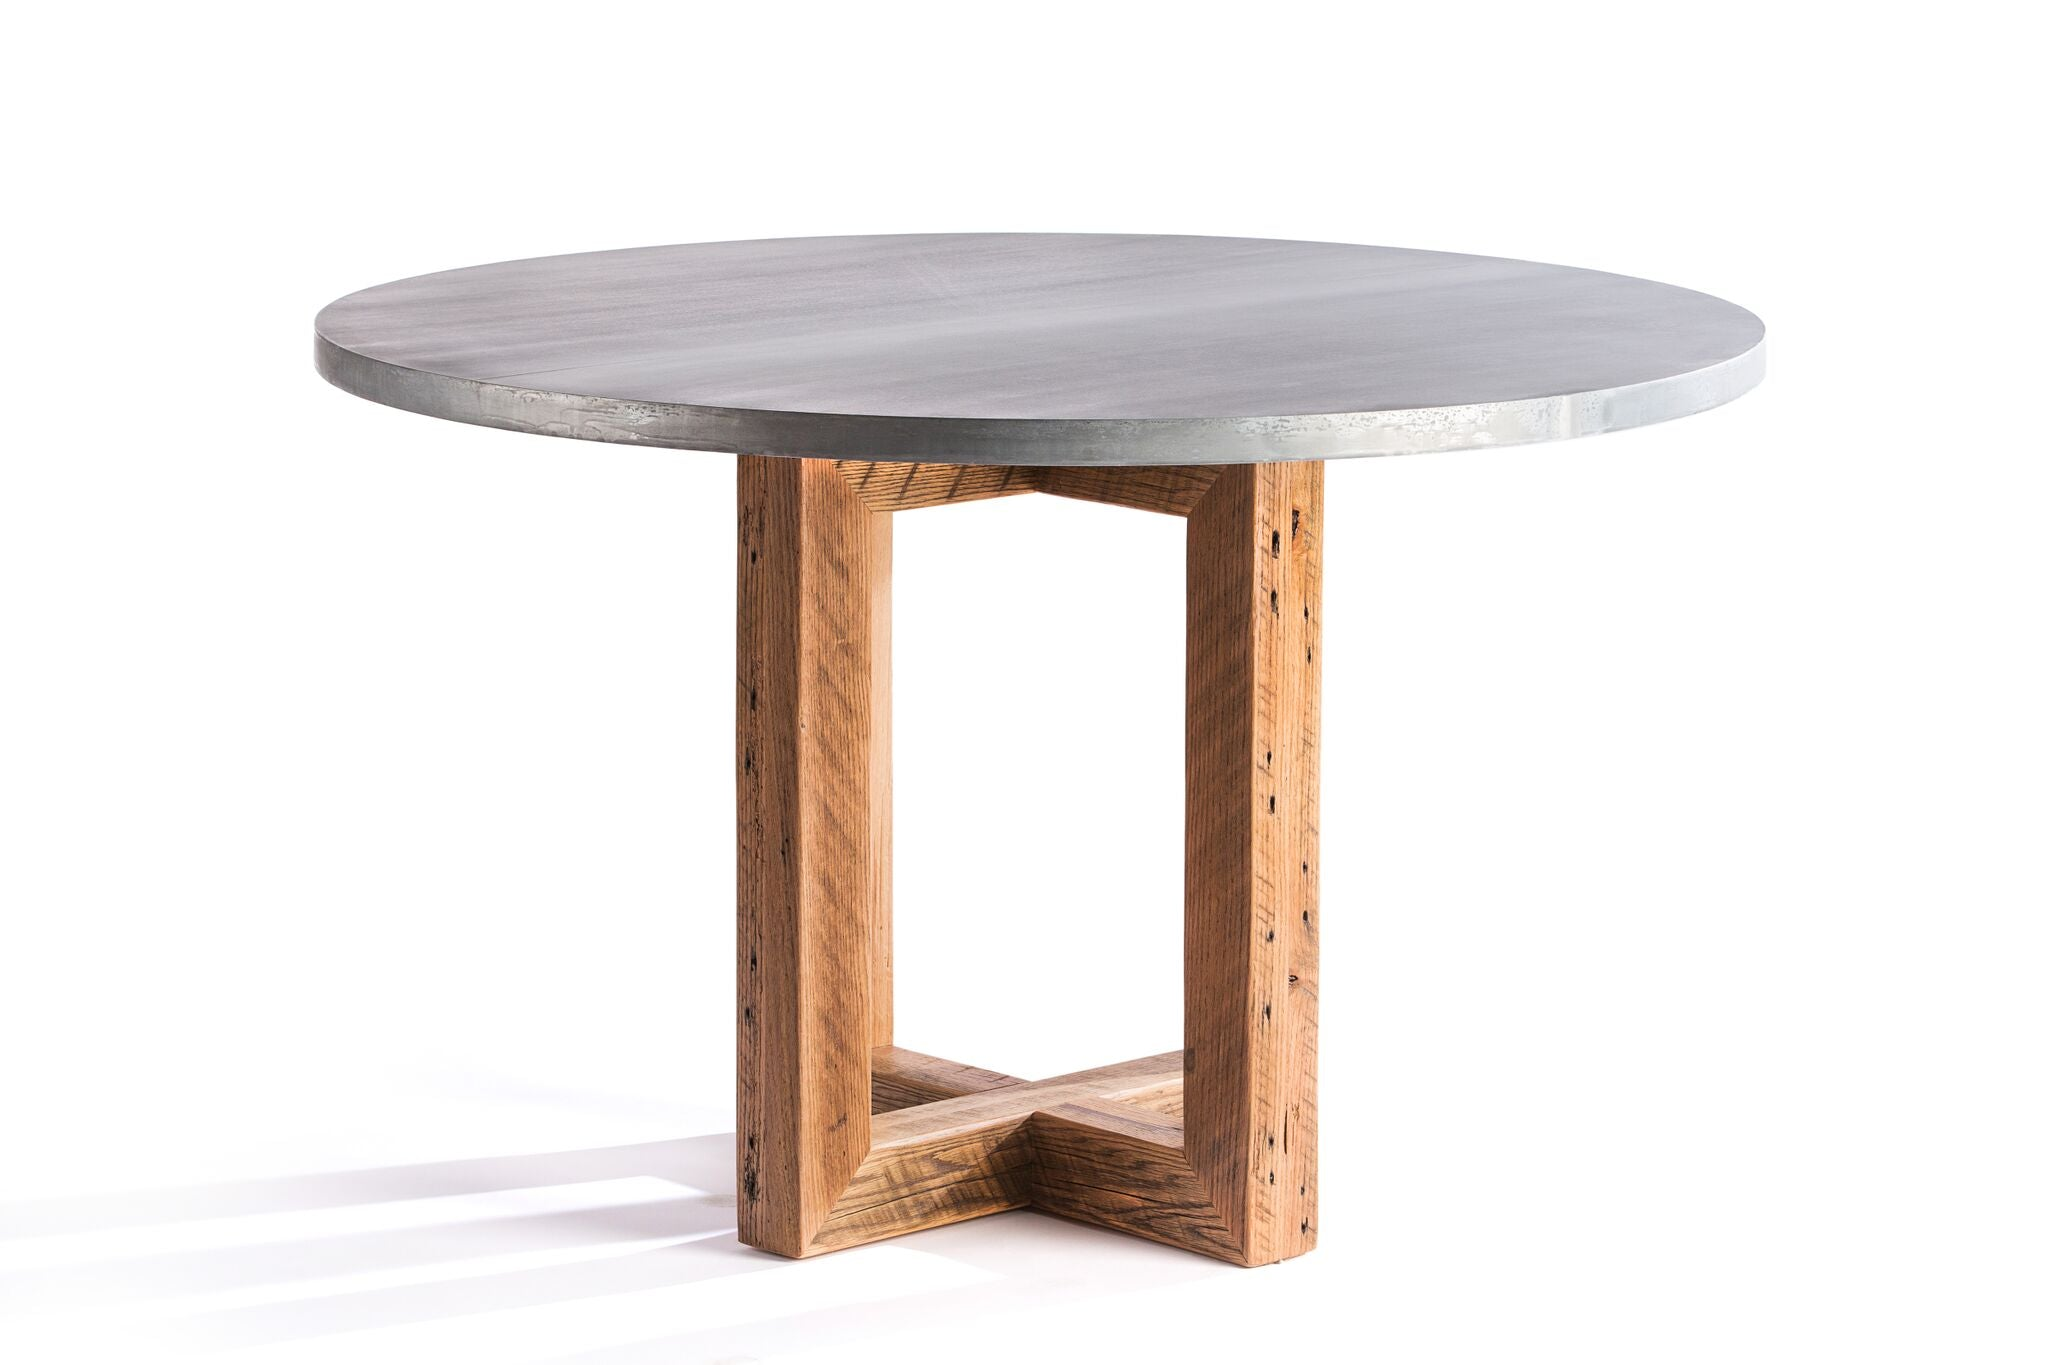 Zinc Round Tables | Winston Table | CLASSIC | Natural Reclaimed Oak | CUSTOM SIZE D 54 H 30 | 1.75"